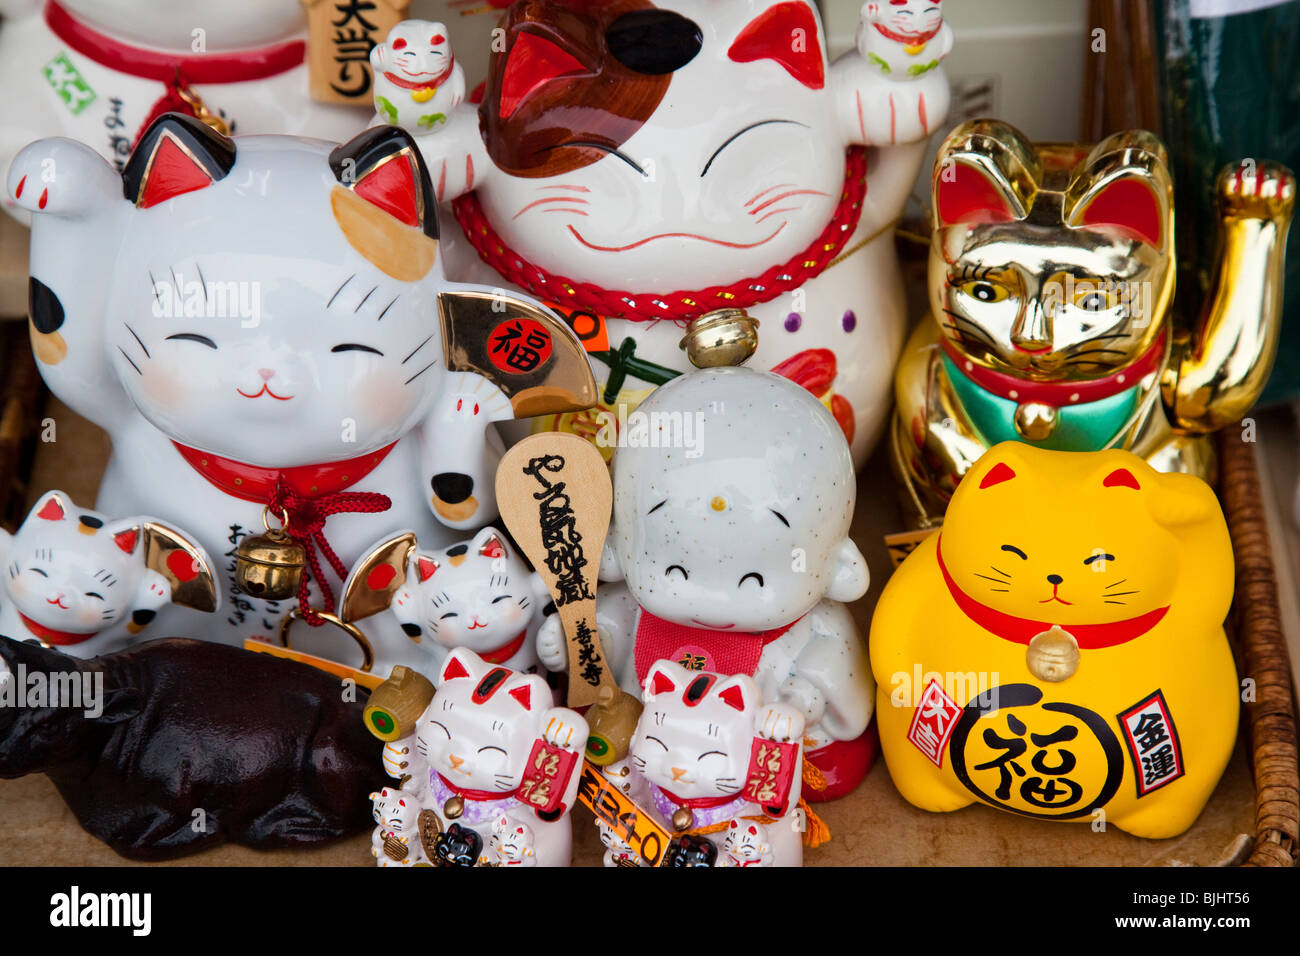 Maneki Neko literally 'Beckoning Cat'; is also known as Welcoming Cat, Lucky Cat, Money cat, or Fortune - Stock Image